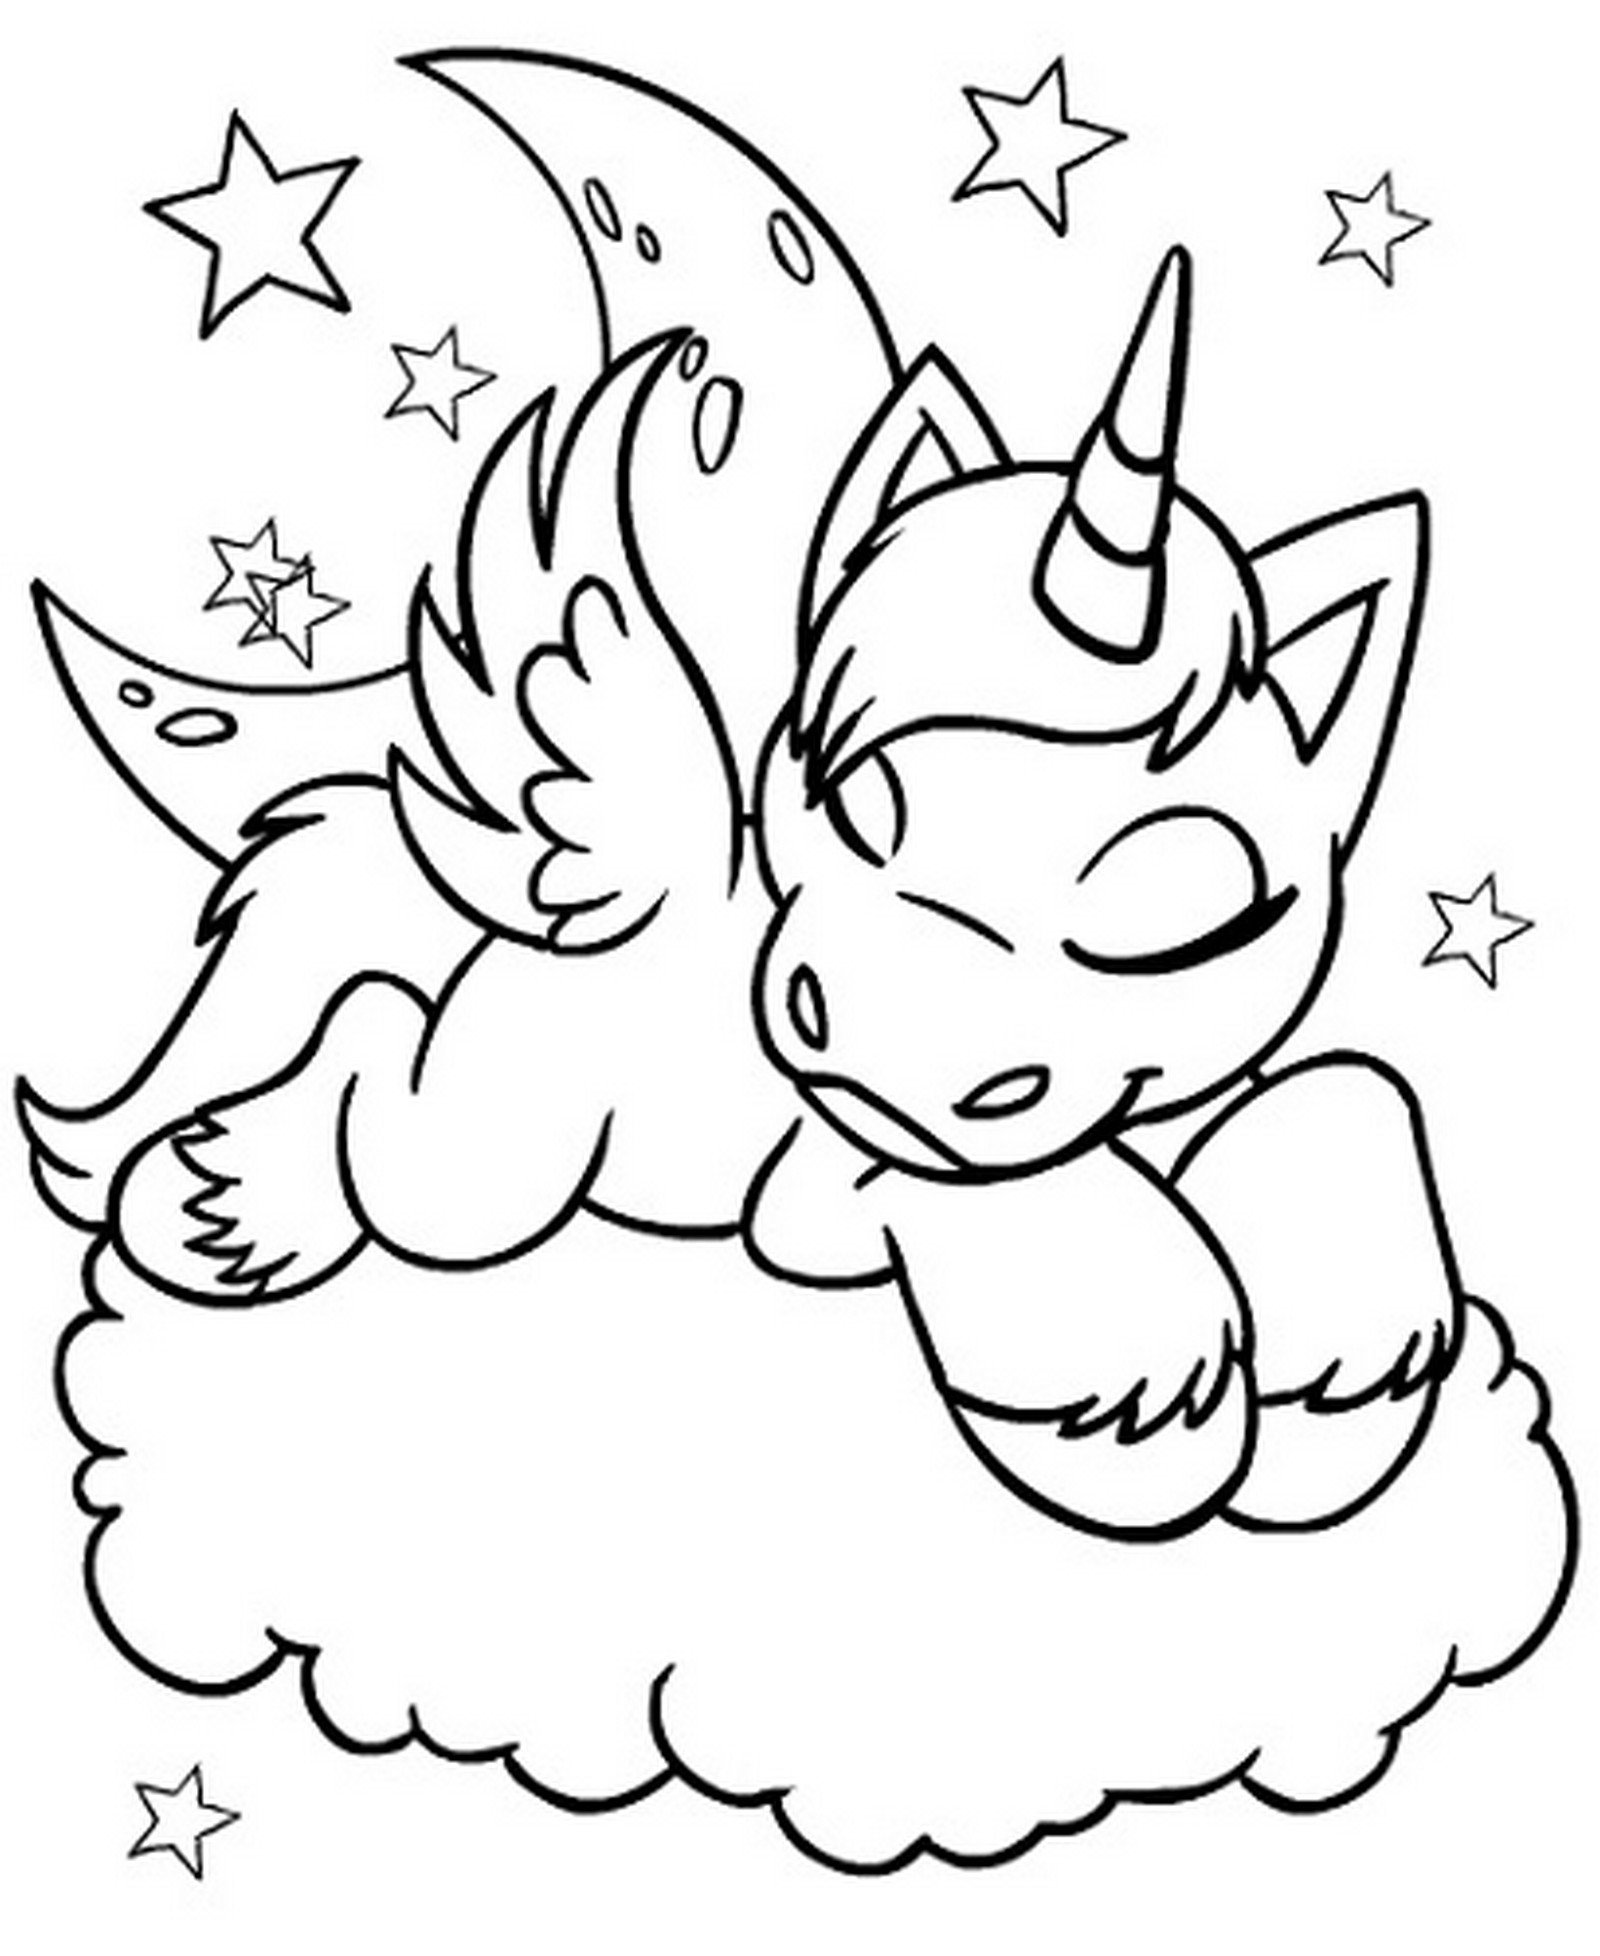 unicorn color page unicorn coloring pages to download and print for free unicorn page color 1 2